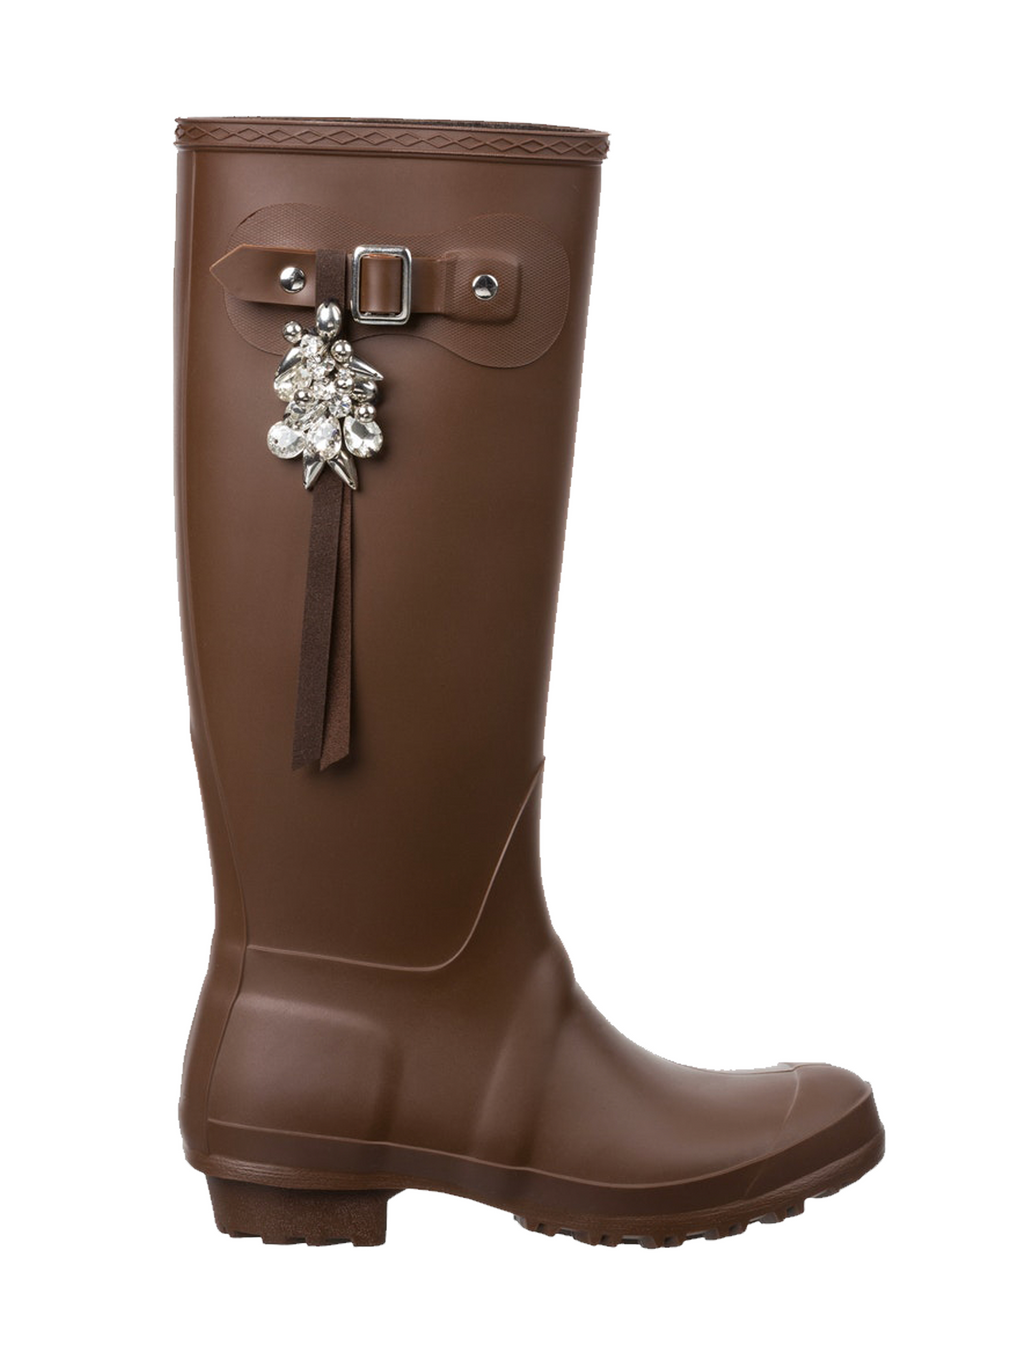 Dorothee Schumacher Splash of Sparkle Rainboot